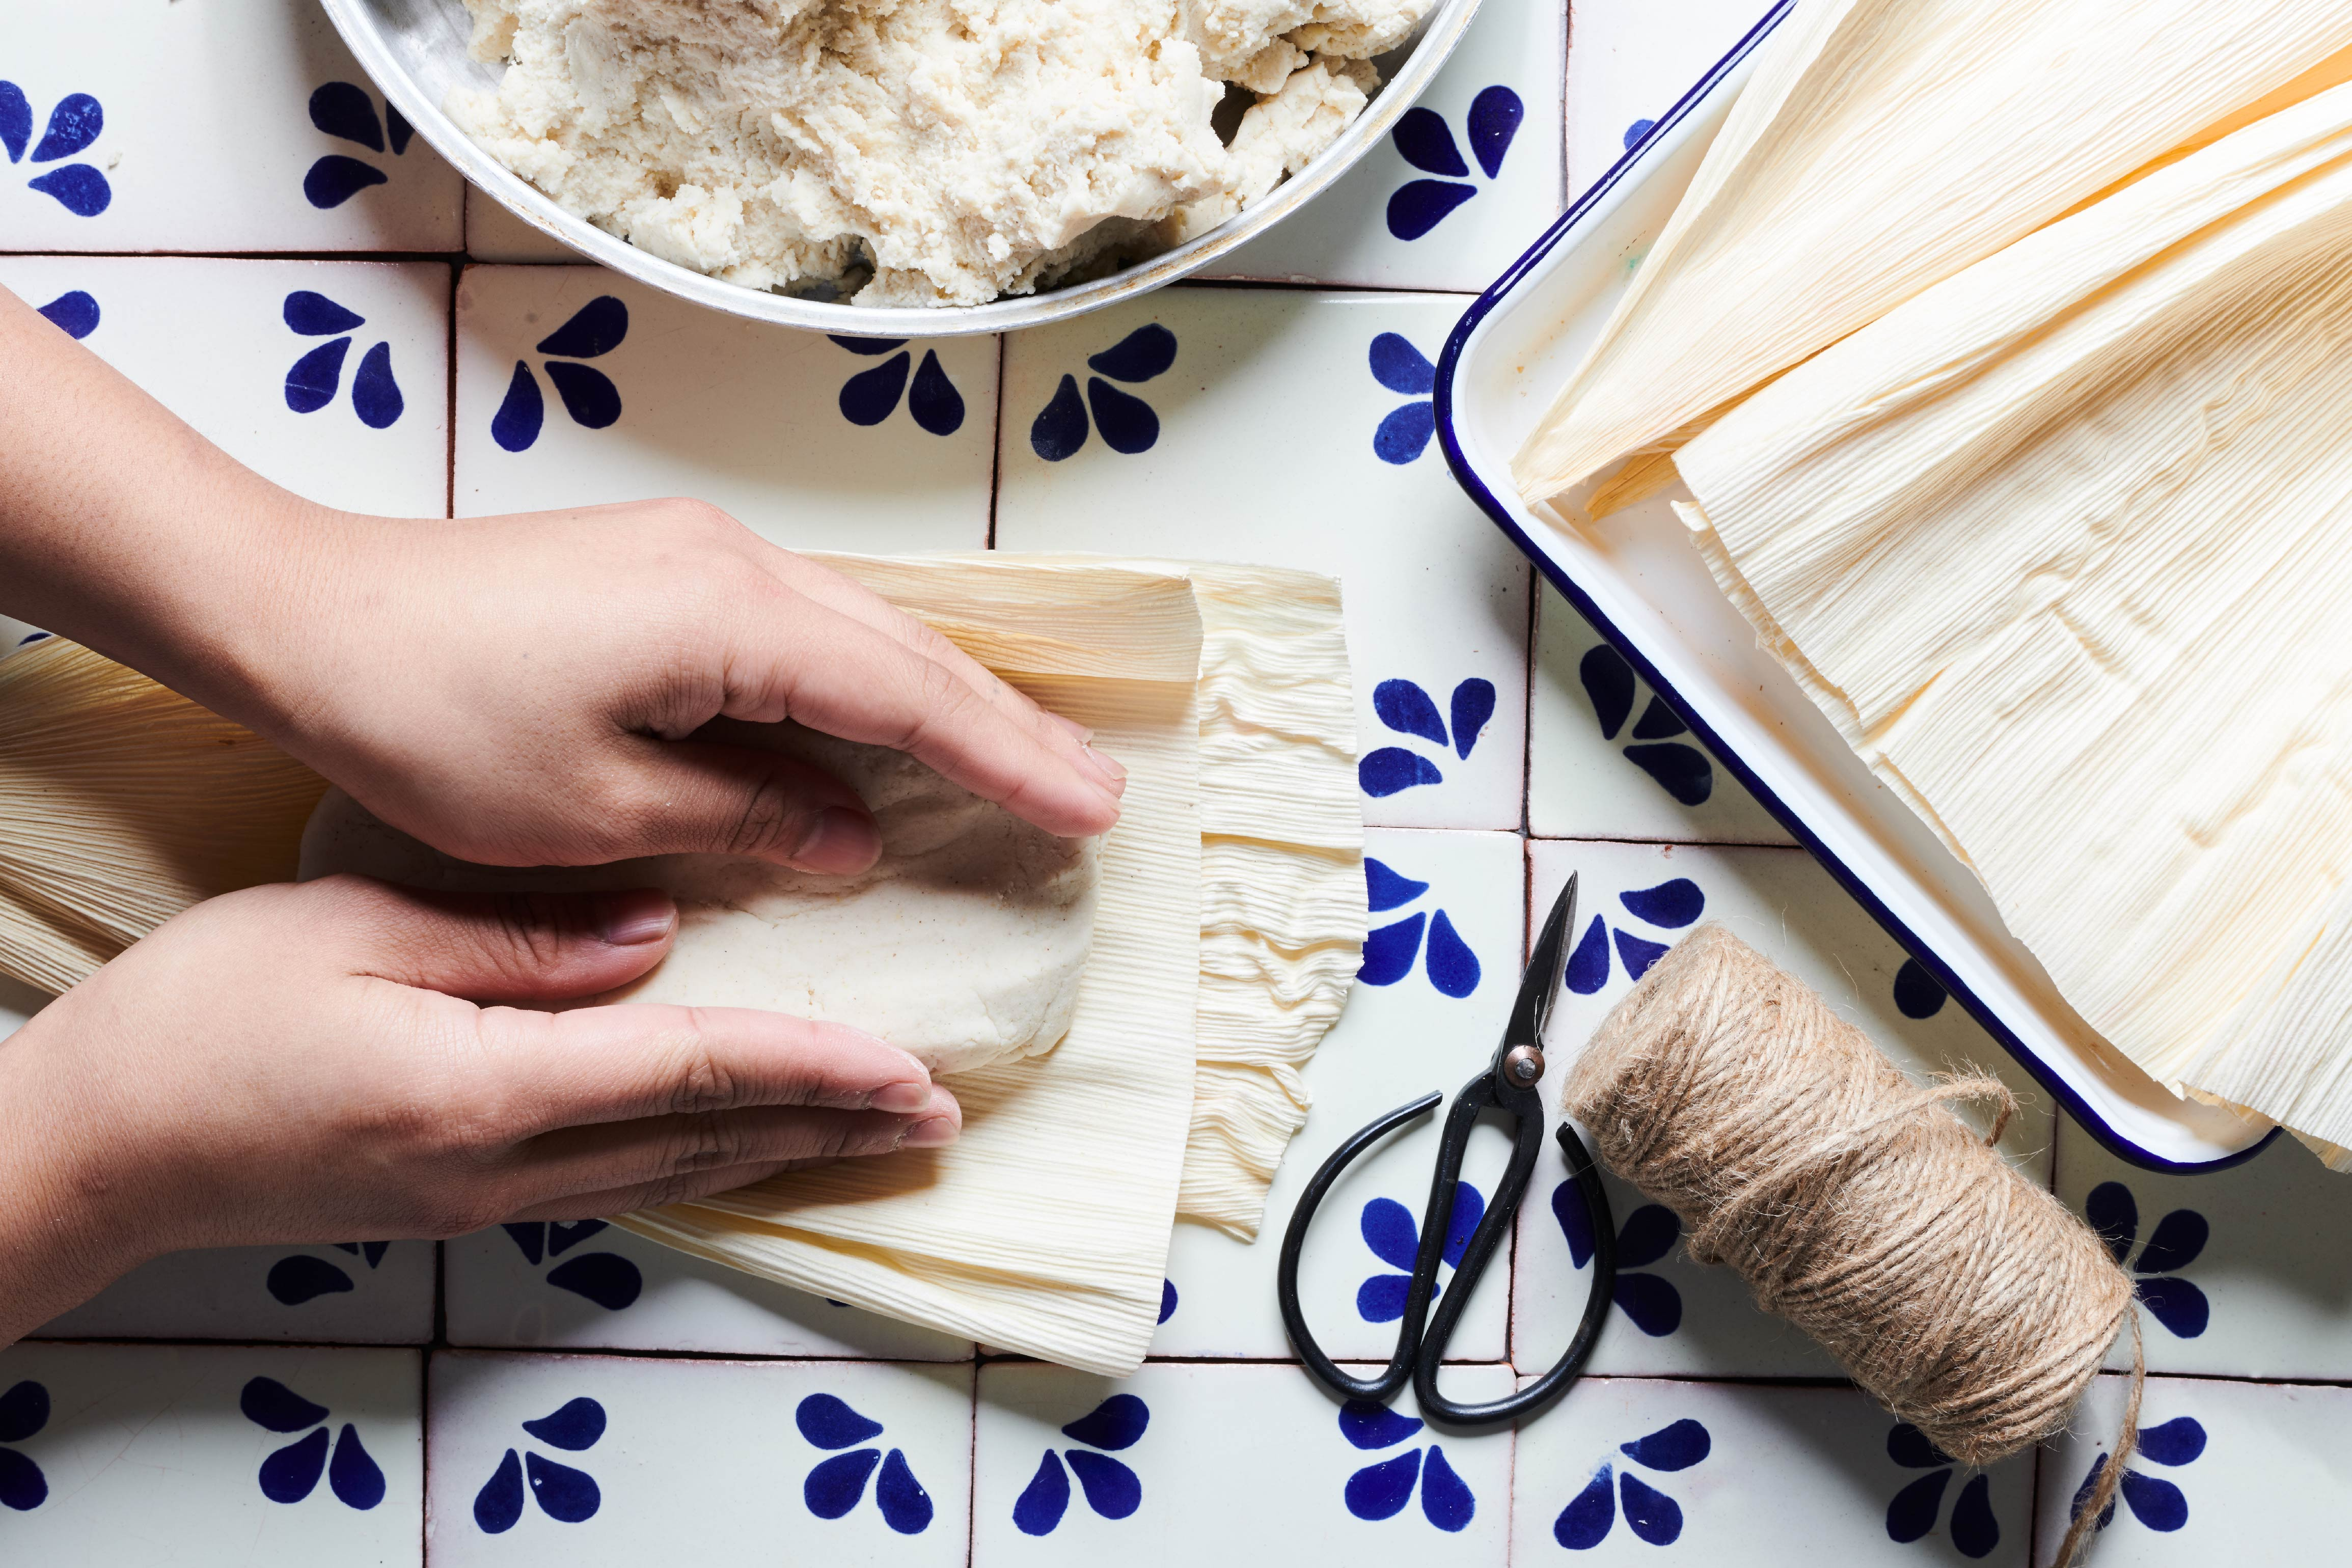 Food photography with woman making tamales for Alicia's Tamales Los Mayas